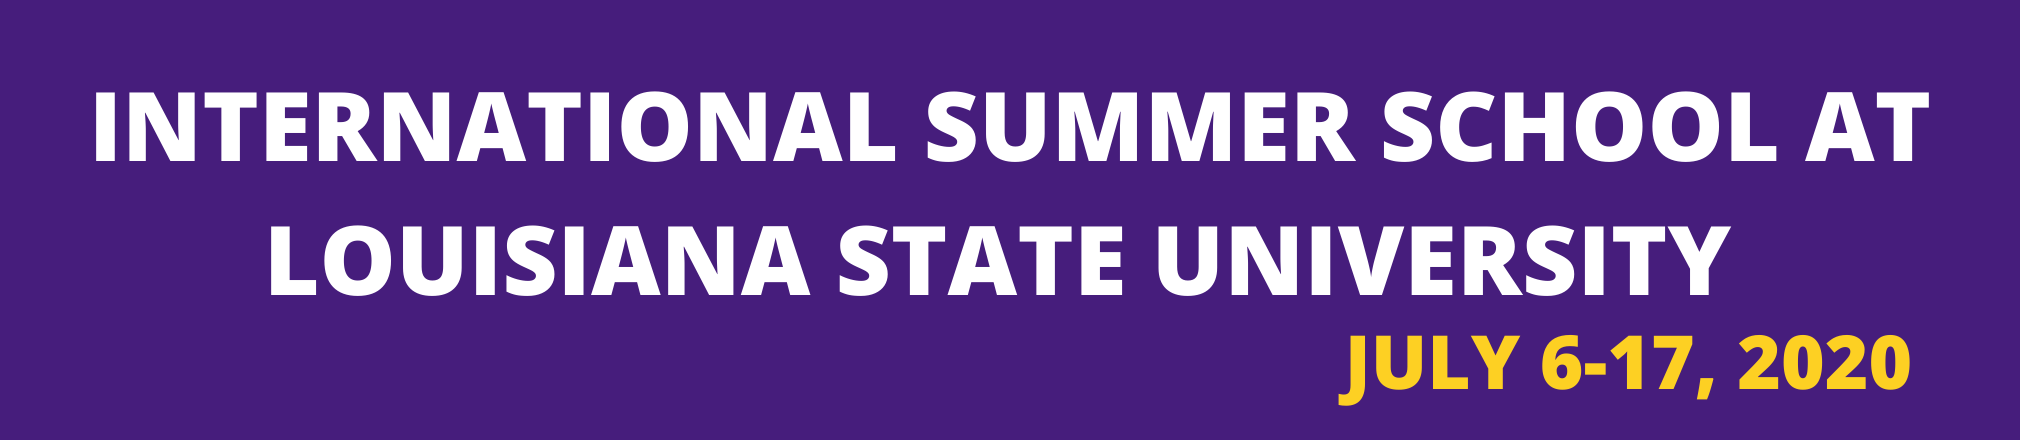 international SUmmer school at LOUisiana State Universitypng